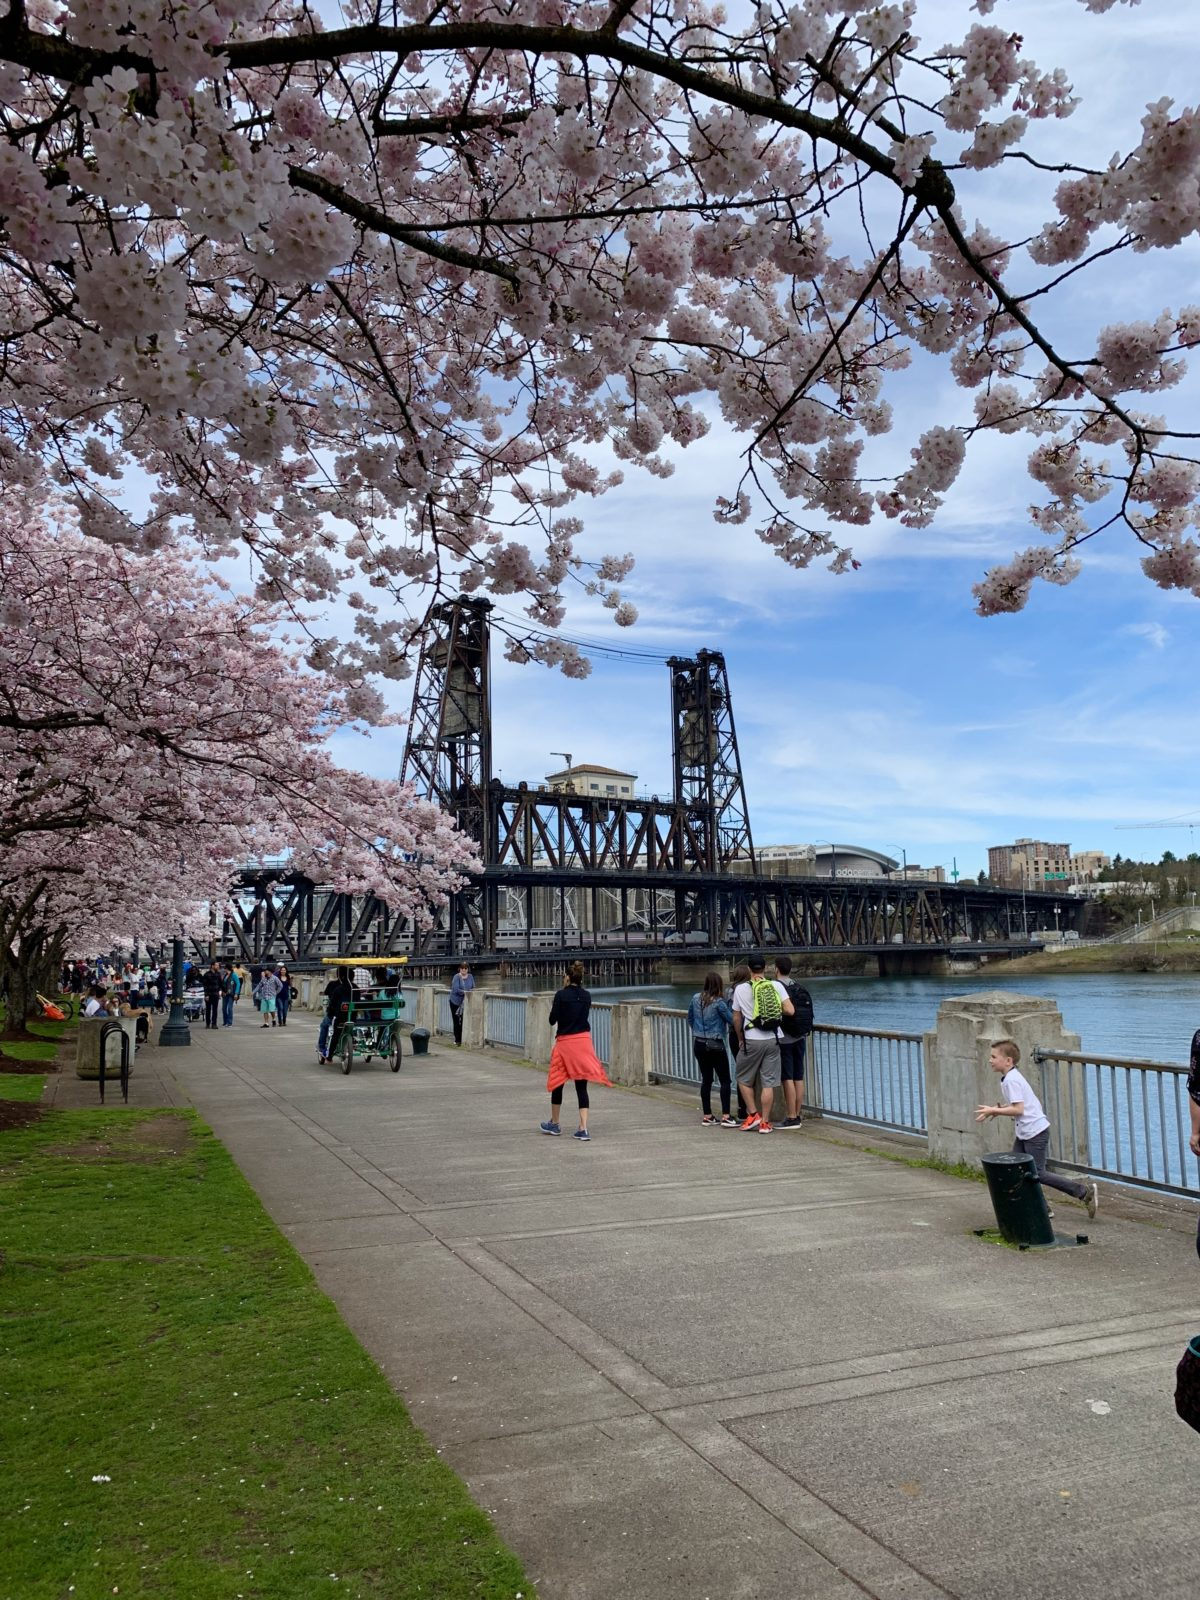 Visiting the Cherry Blossoms in Portland